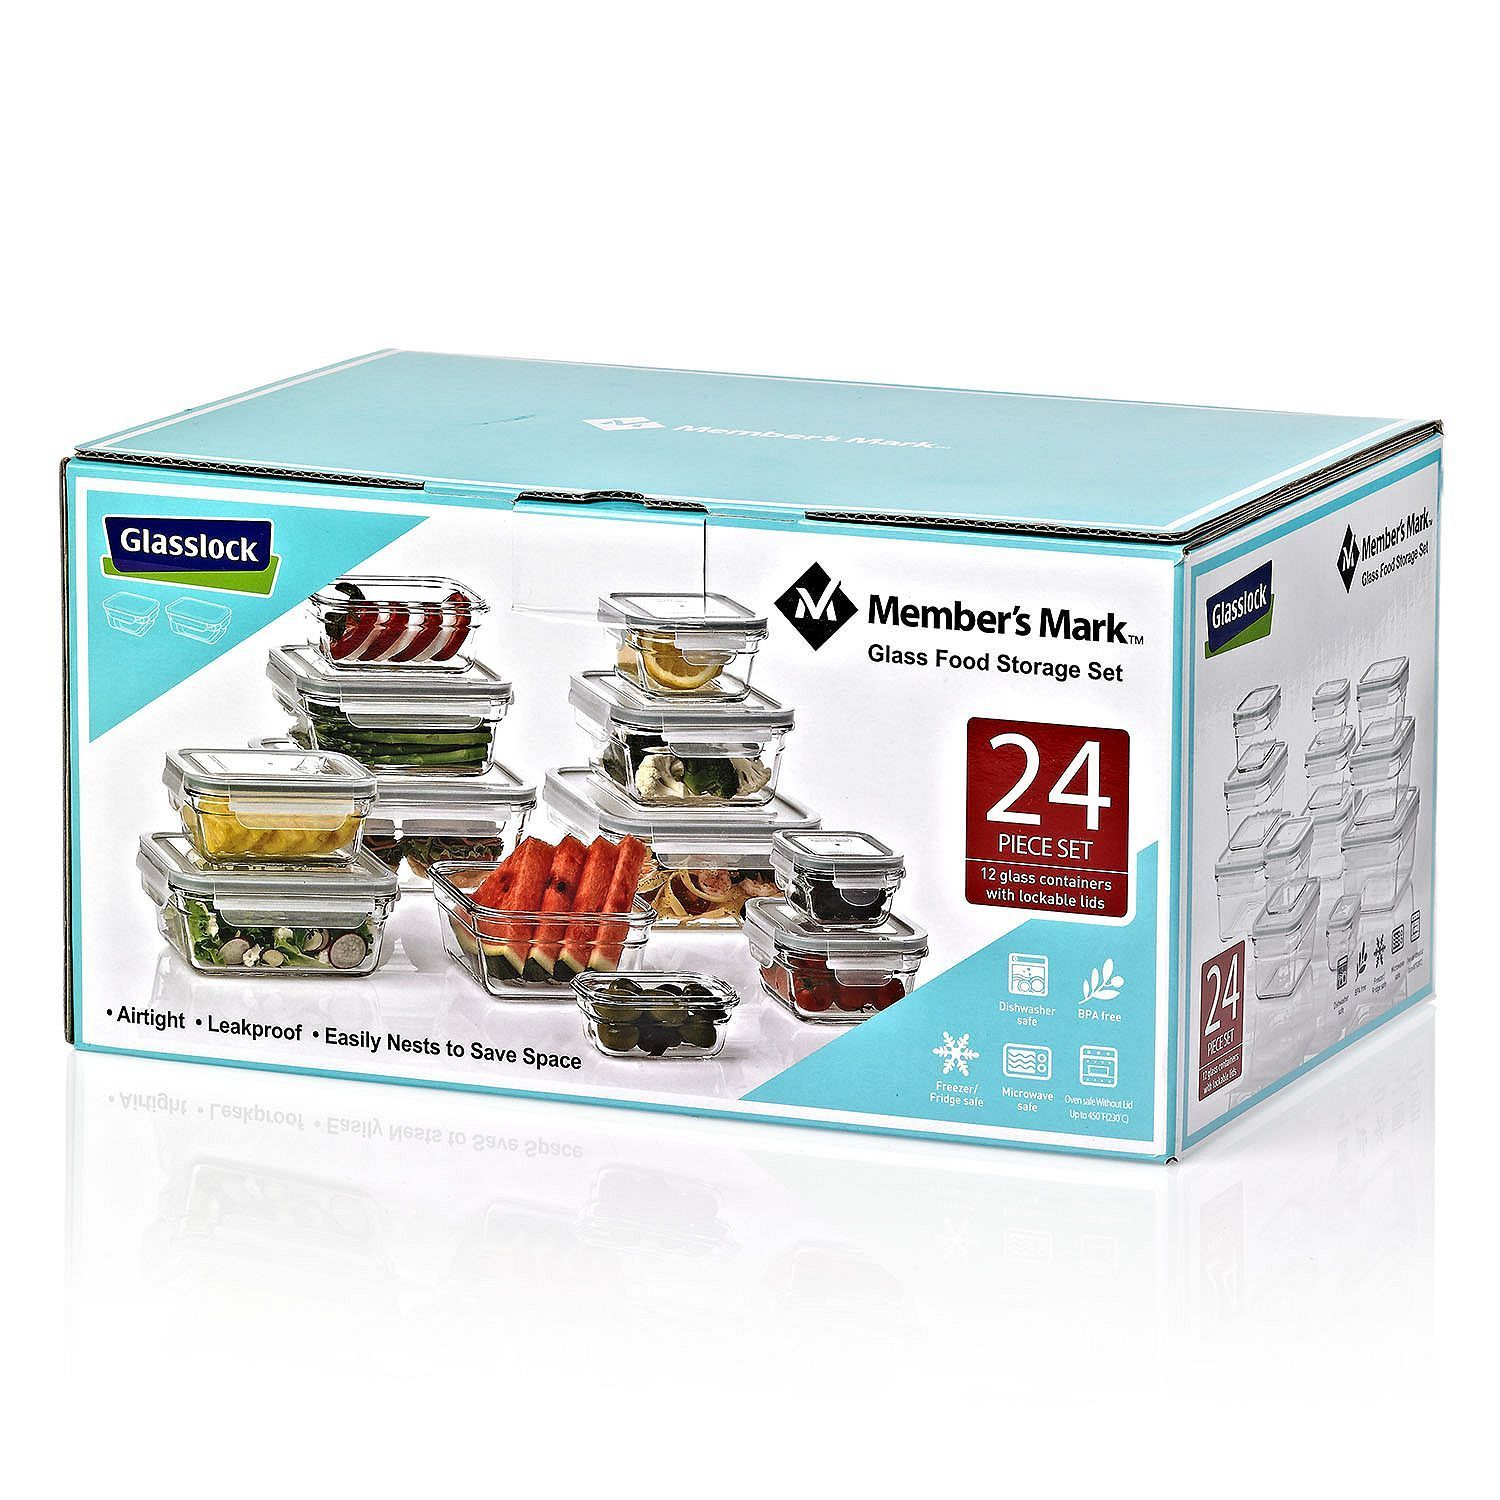 Member's Mark 24-Piece Glass Food Storage Set by Glasslock BPA Free Containers 1